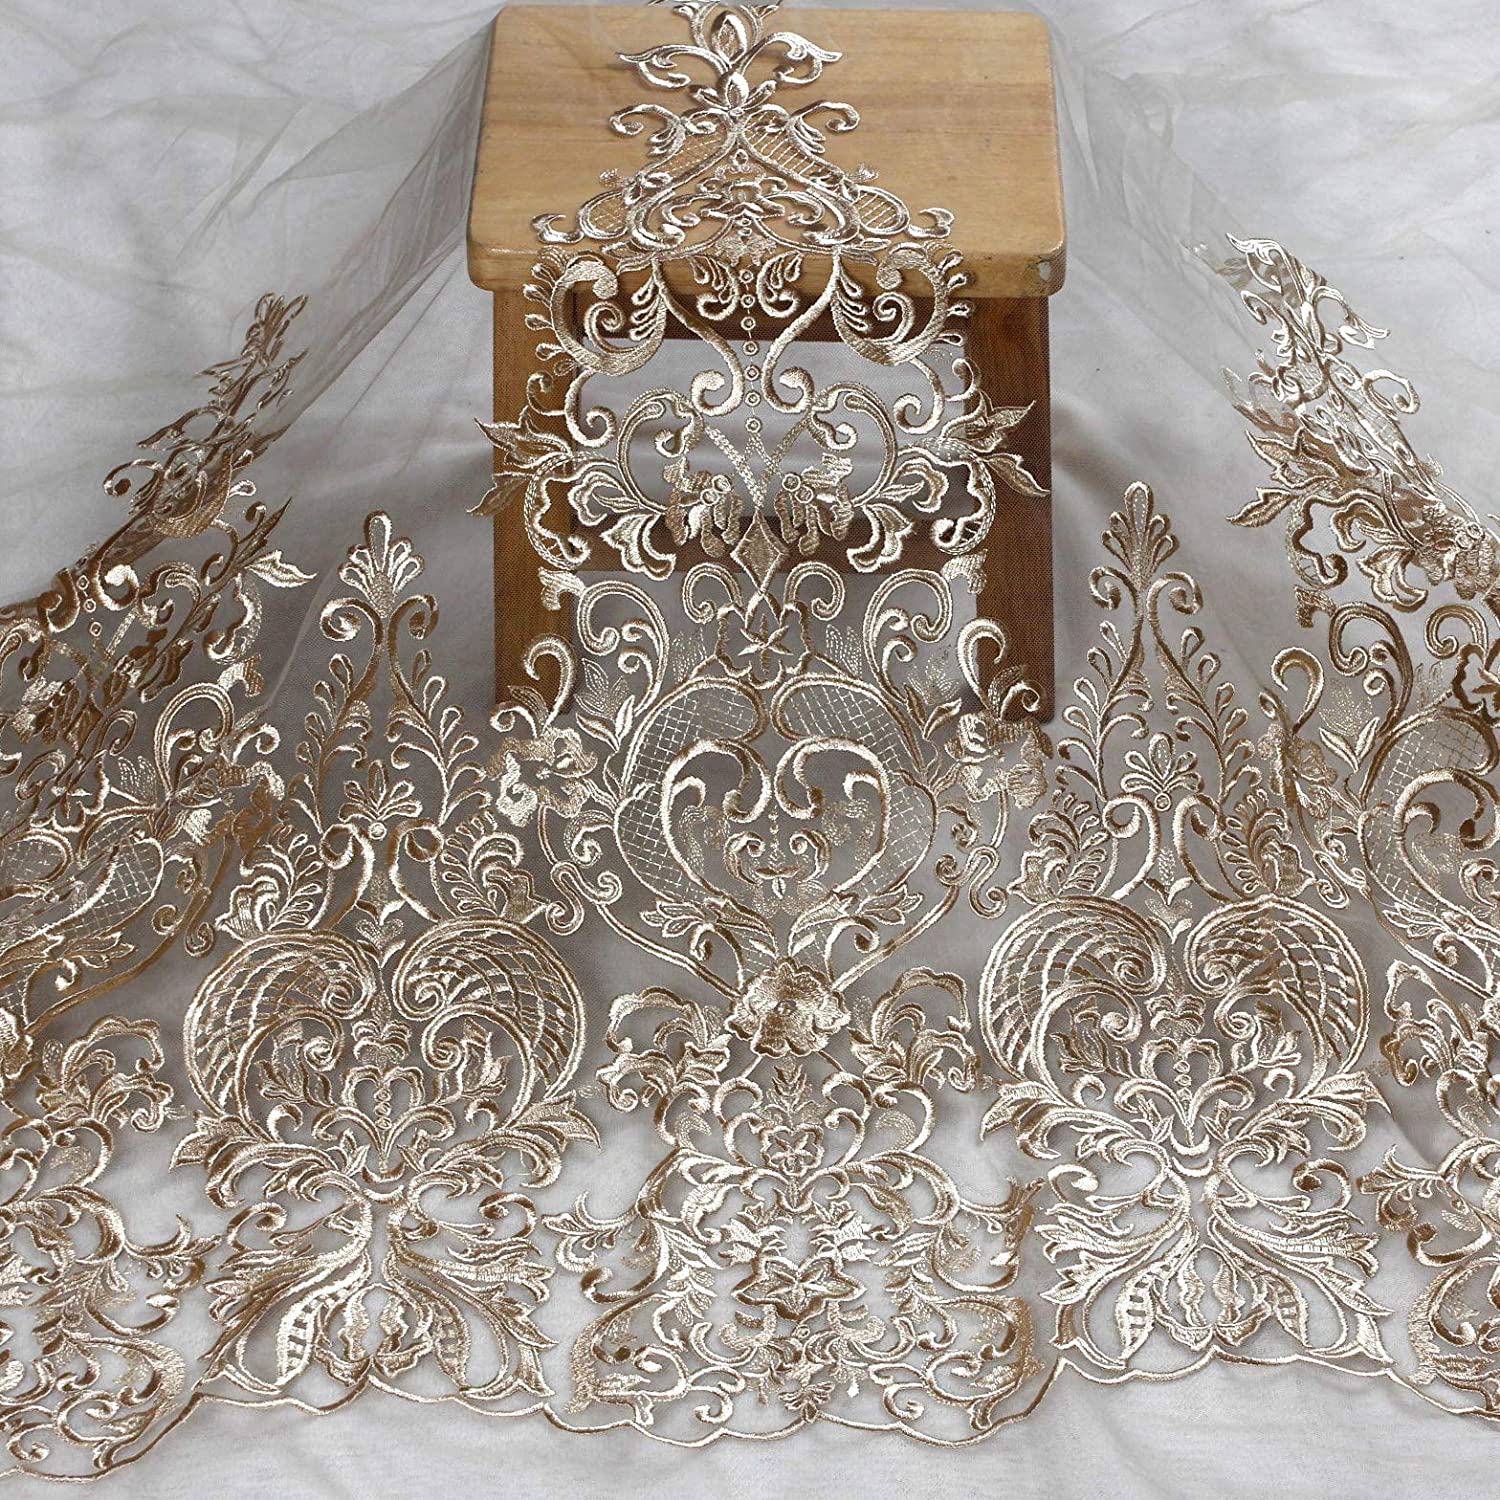 Ivory Beige,Gray Gown lace Trim for Bridal Accessories by Yard 2019 New 75cm Width Ivory,Black